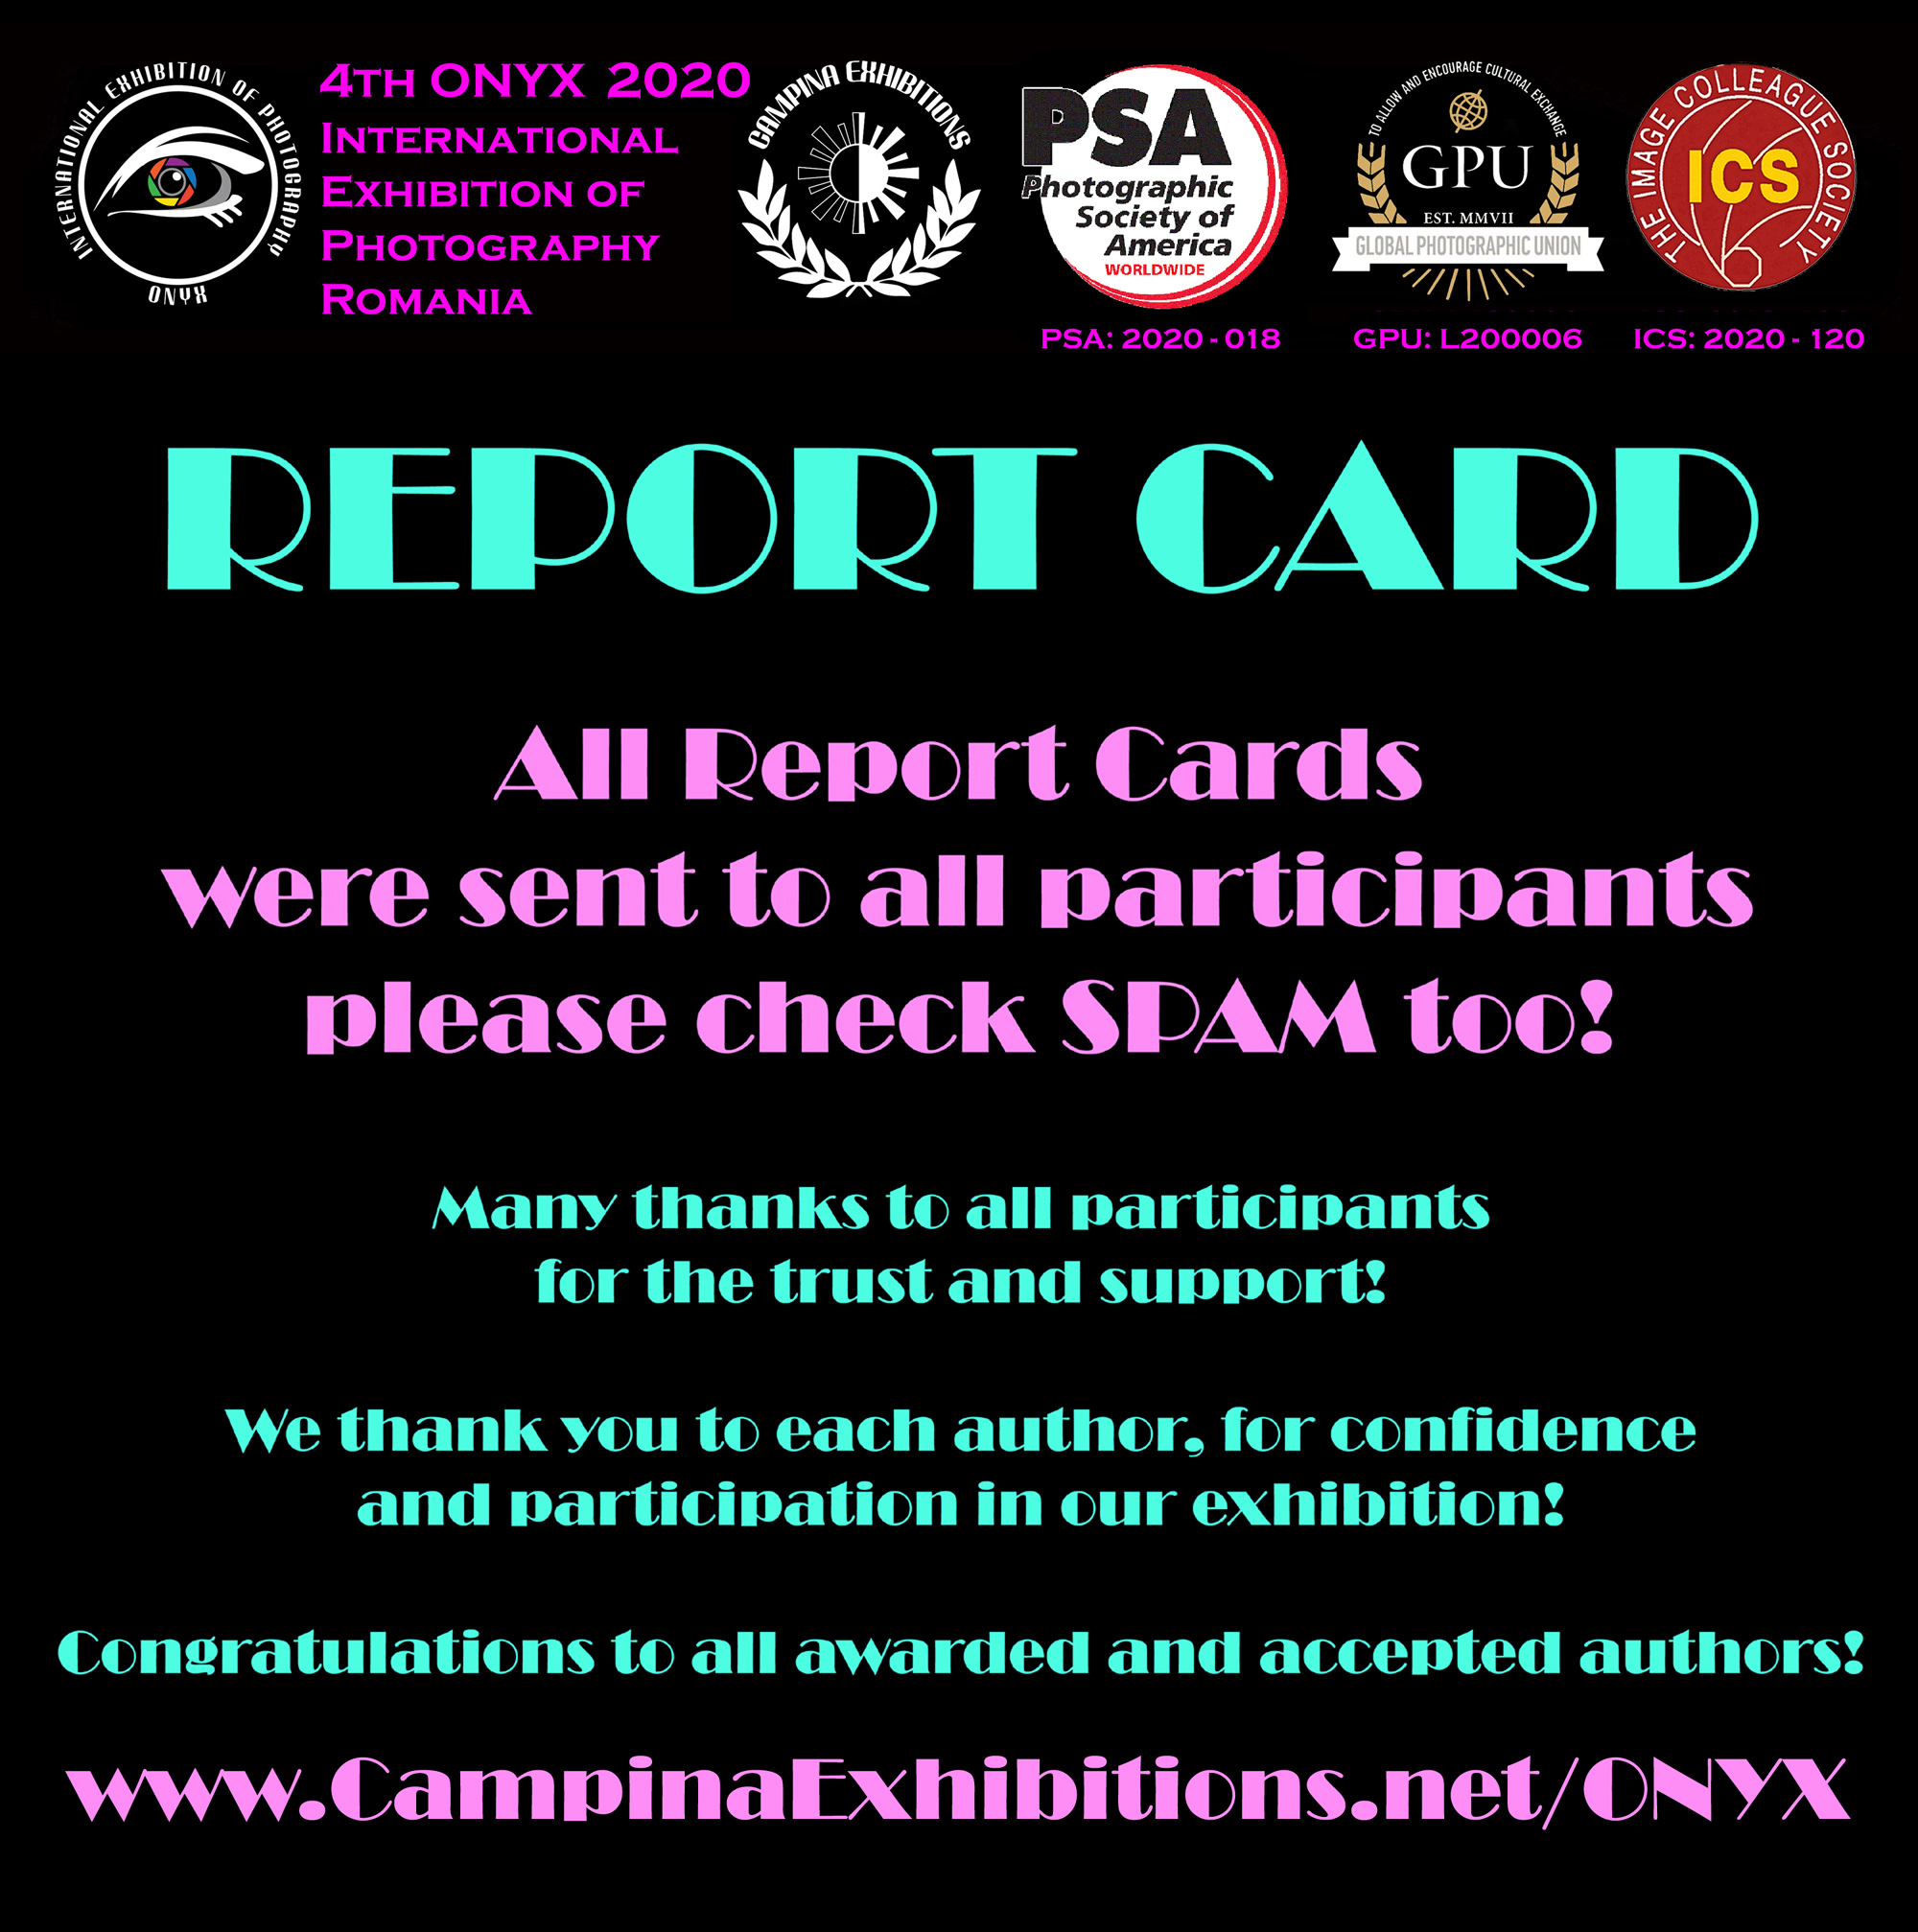 4th ONYX 2020 - All REPORT CARDS have been sent to the authors!